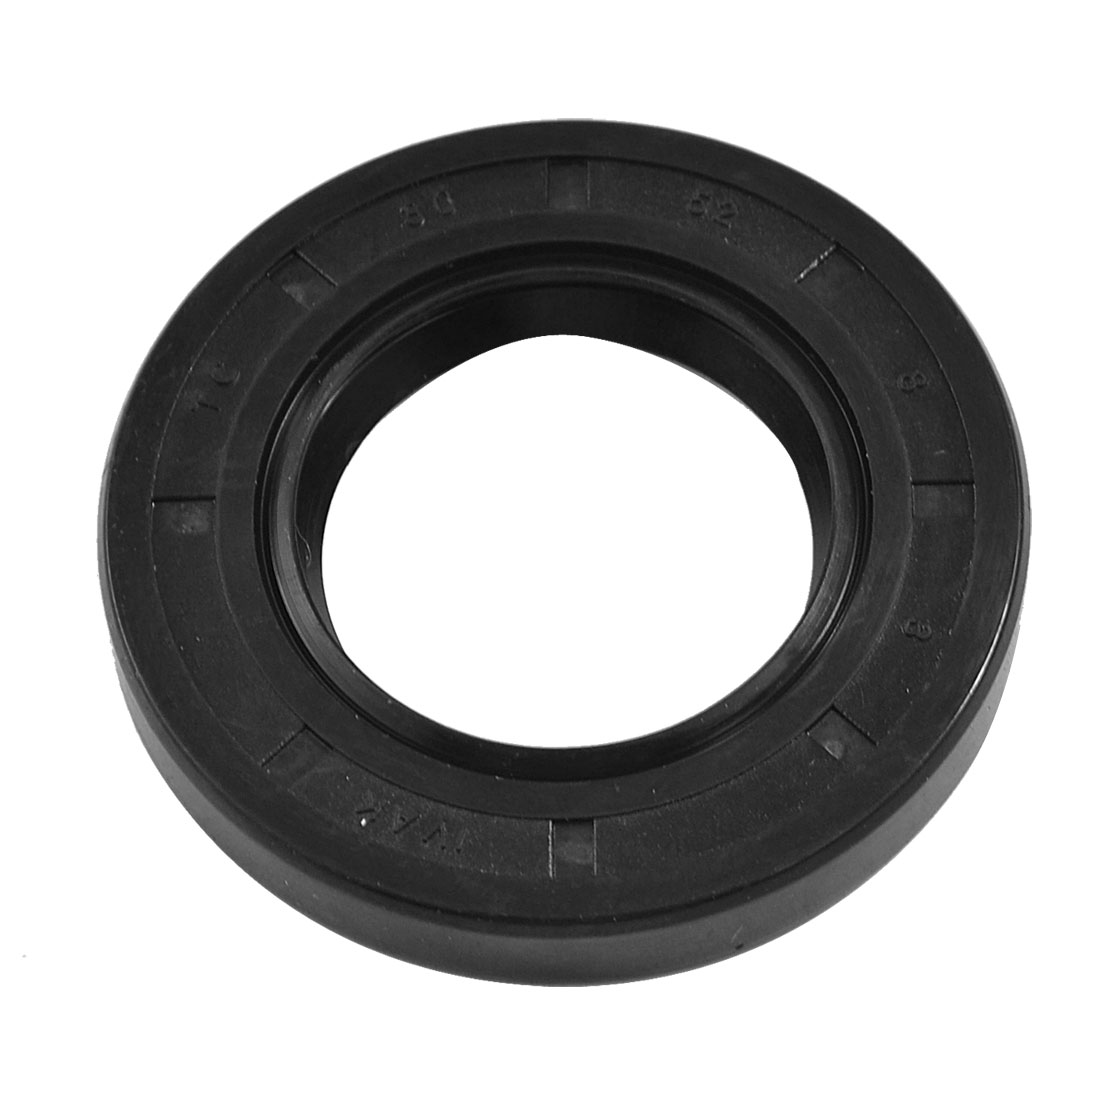 30mm x 52mm x 8mm Metric Double Lipped Rotary Shaft Oil Seal TC - image 1 of 1